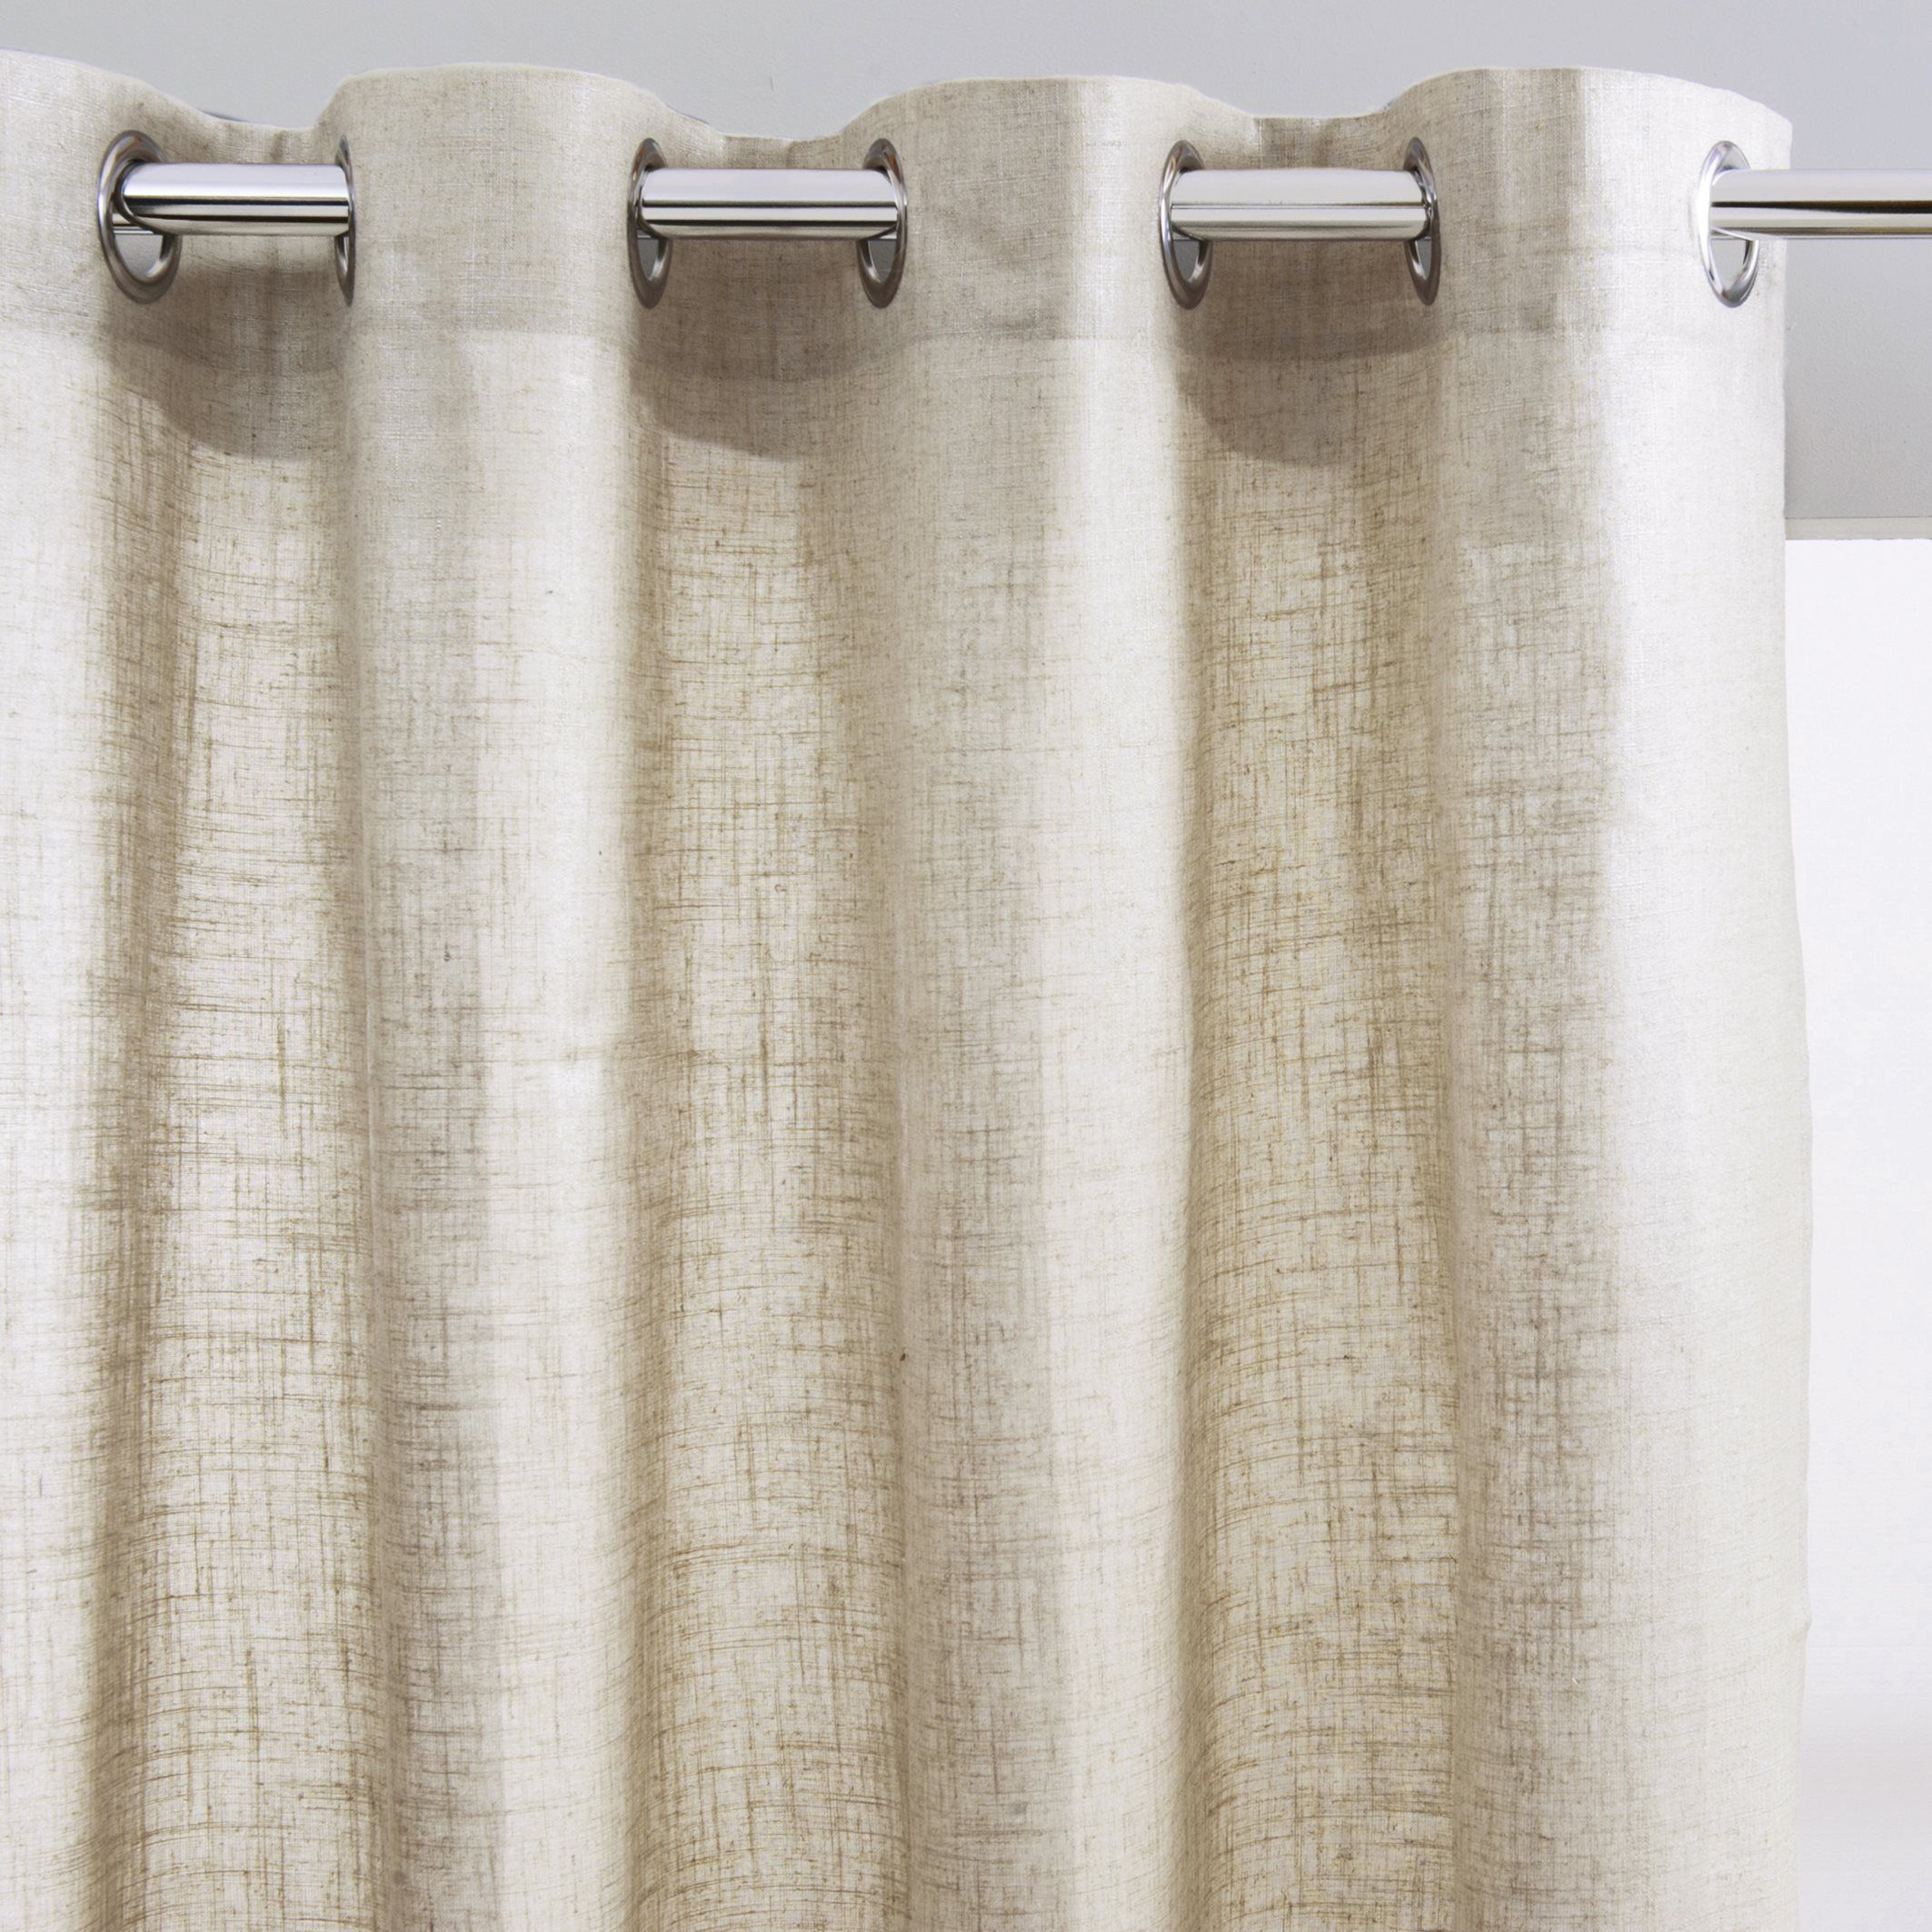 Brillance linen effect curtain with eyelets la redoute interieurs